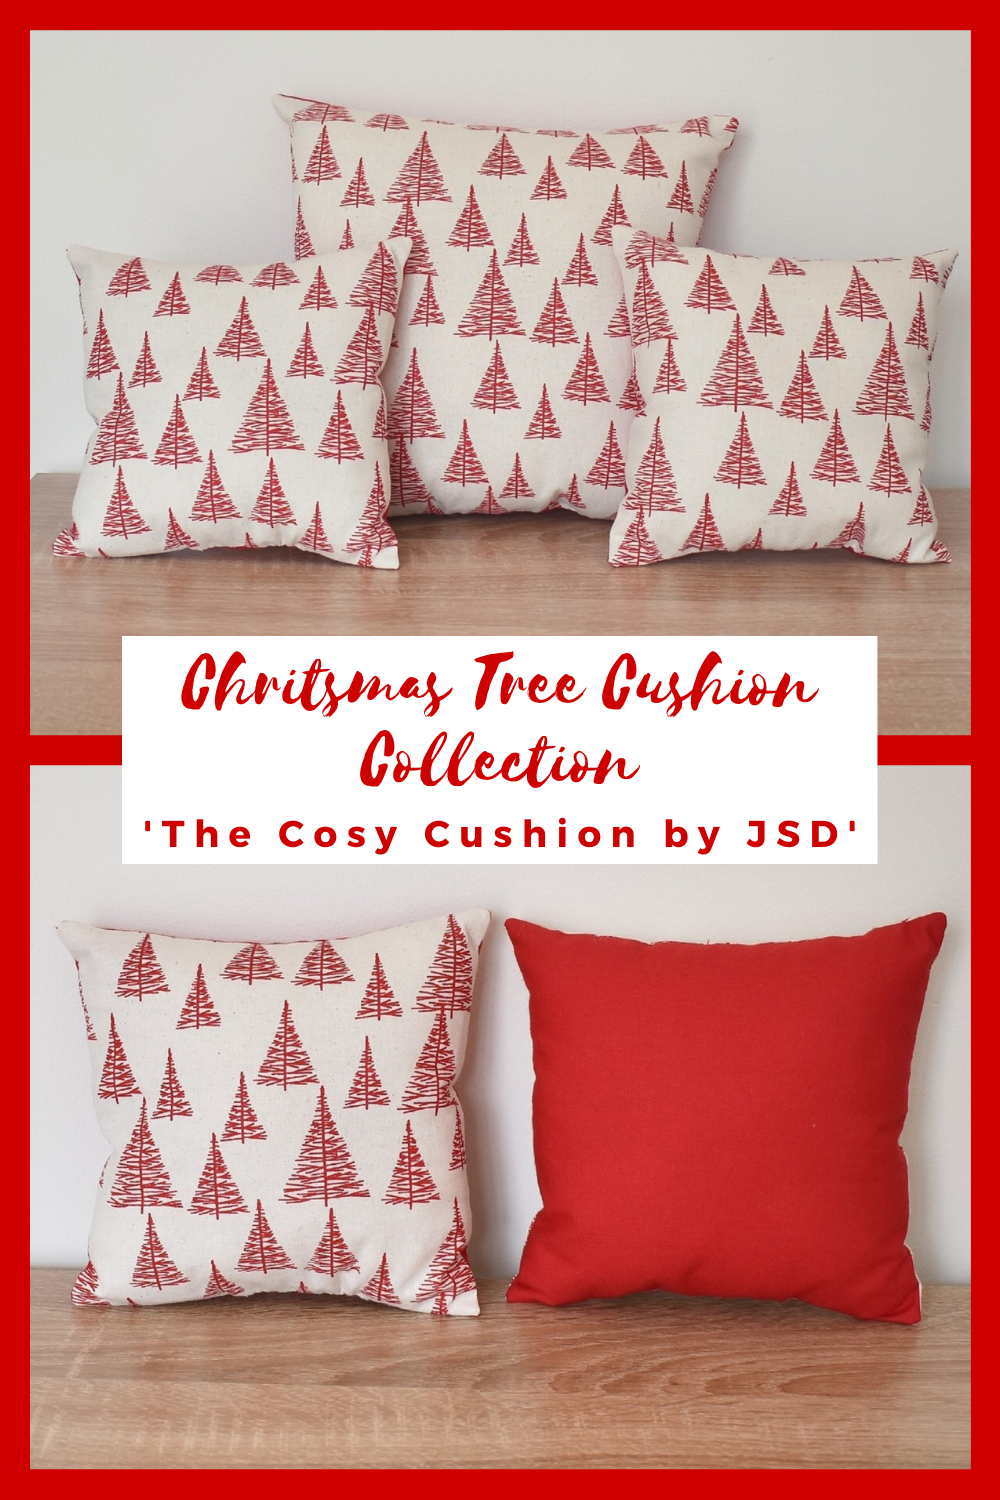 Christmas cushions for every interior. Whether you want to decorate a sofa for Christmas, place cushions around the dining table for an extra festive touch, or add some to your bedroom for some cosy Christmas cheer then look no further. With a lovely range of Christmas cushions available we are sure to have one that will be a perfect fit for your festive home. #christmascushions #festivecushions #christmashome #christmastreecushions #christmassoftfurnishings #redchristmascushions #christmas2020